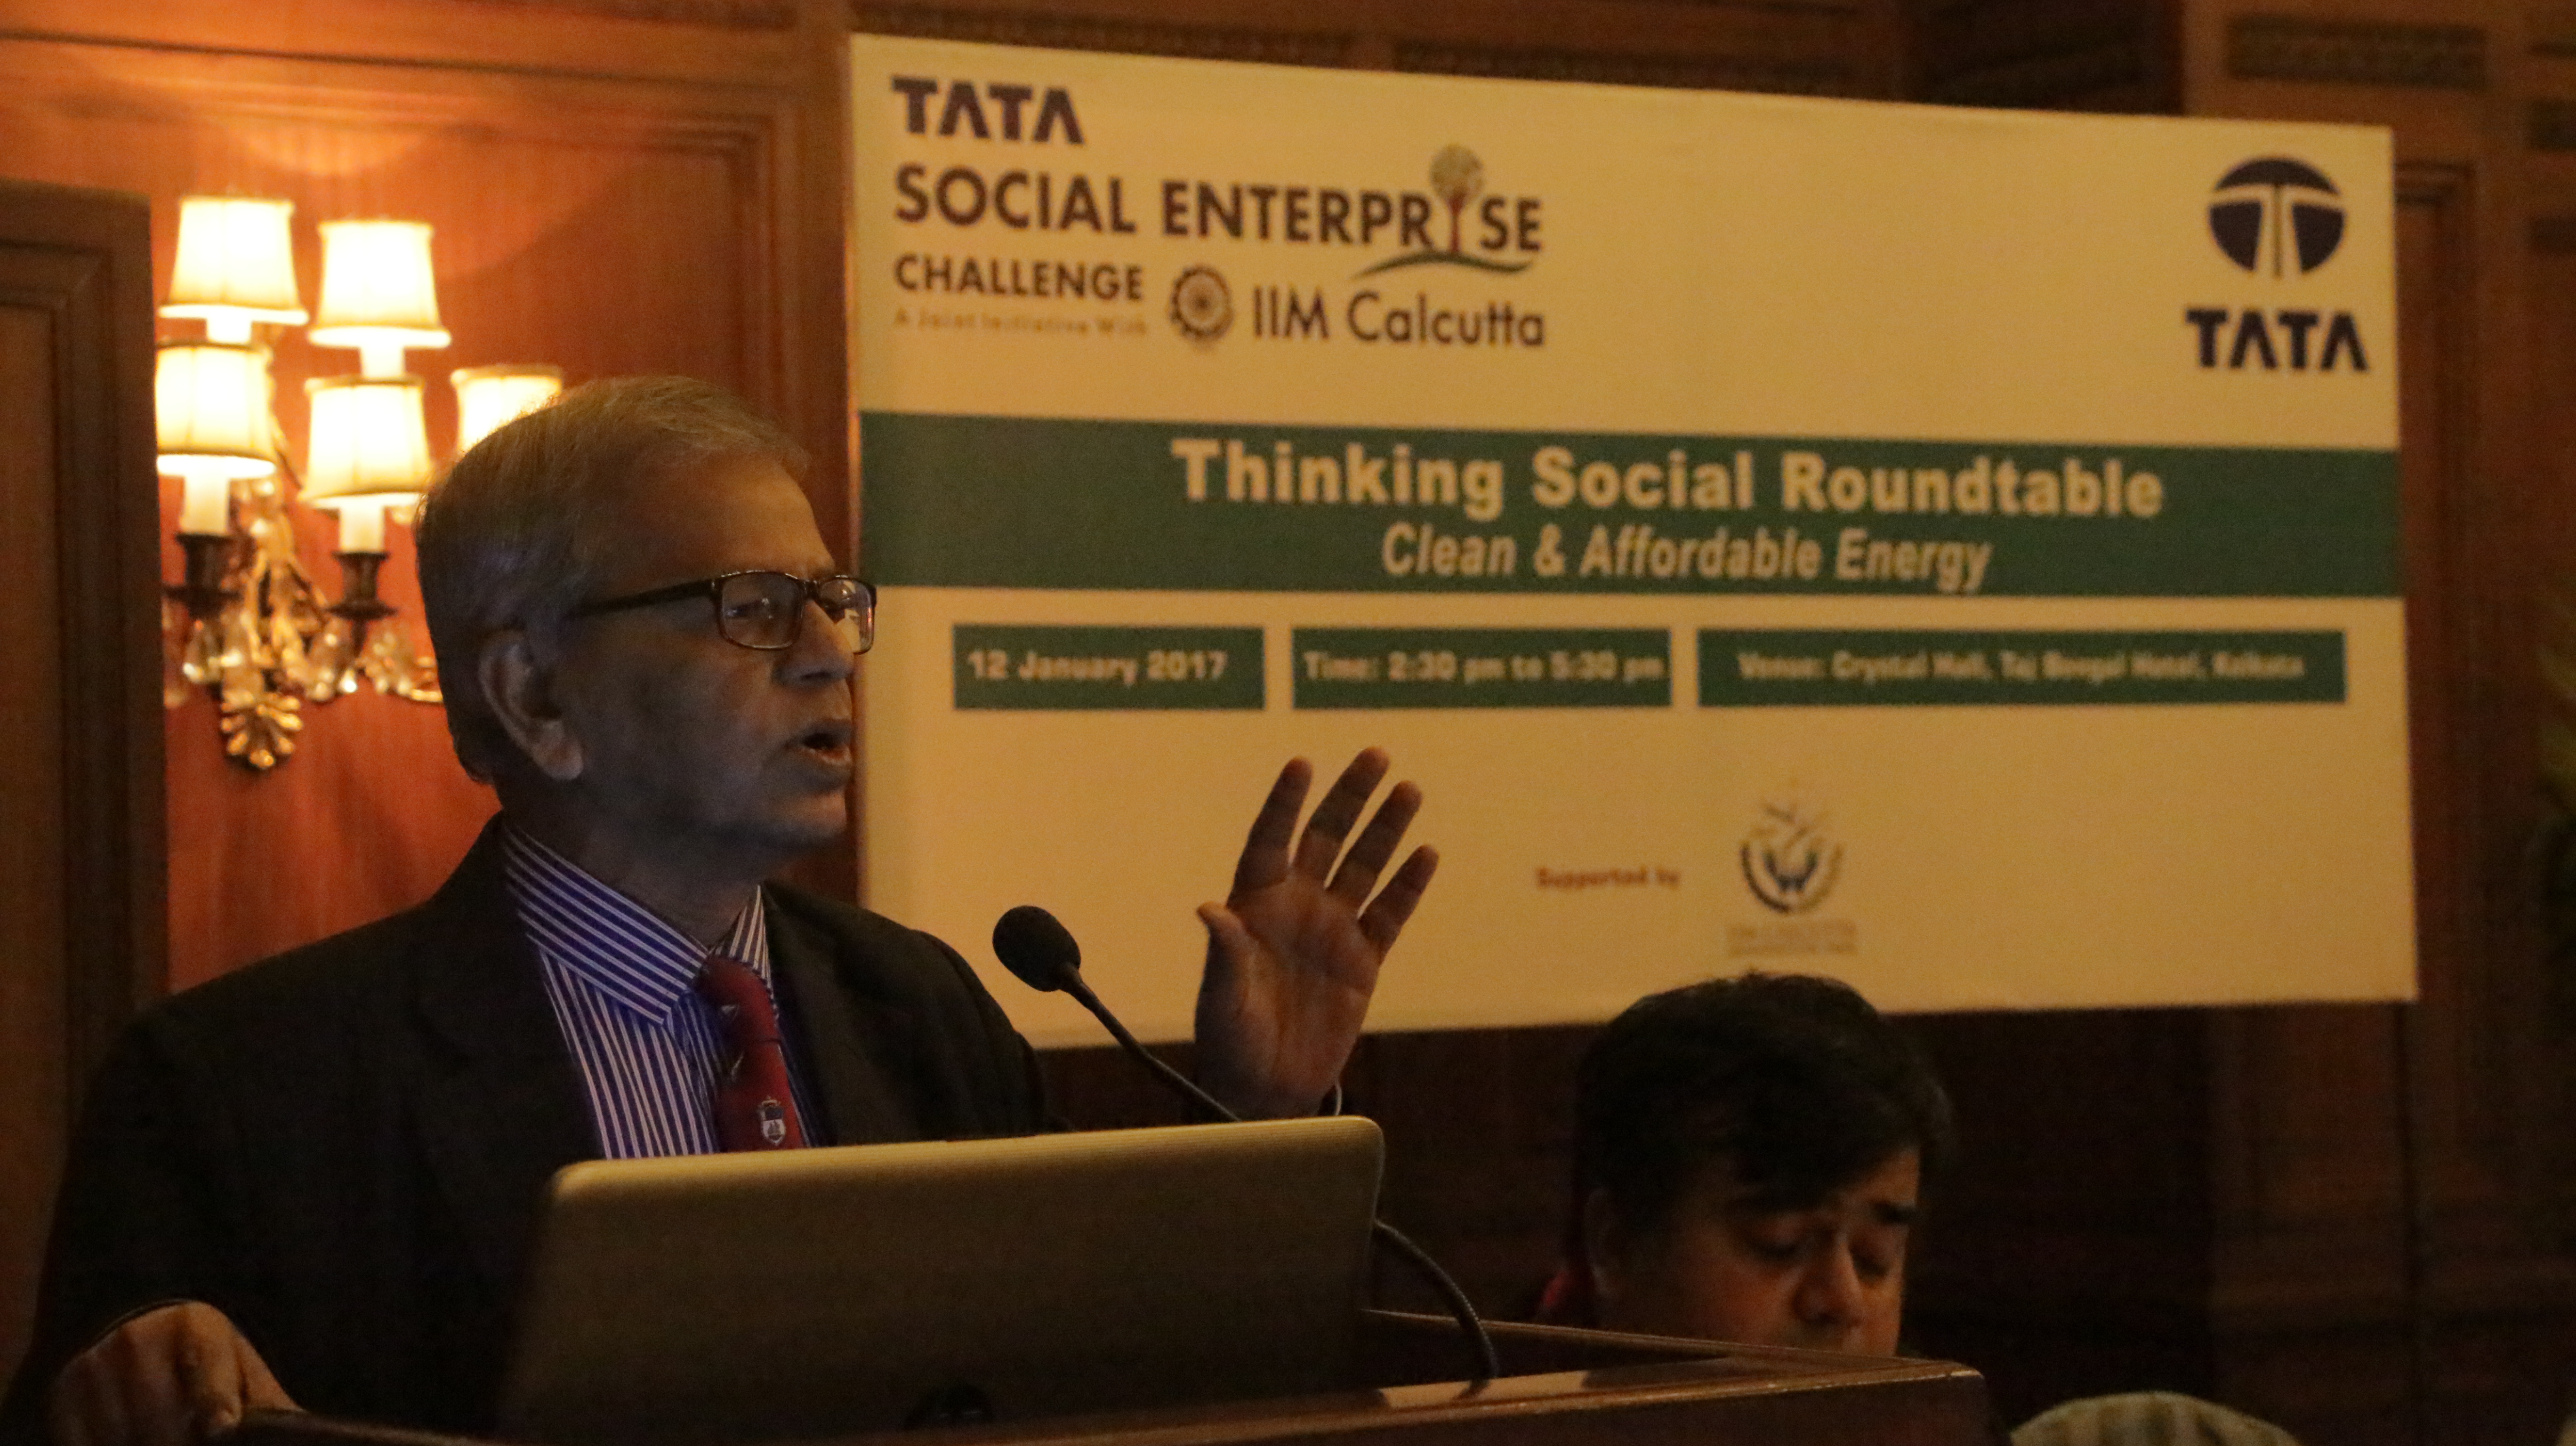 Thinking Social Roundtable – Kolkata, 12 Jan 2017